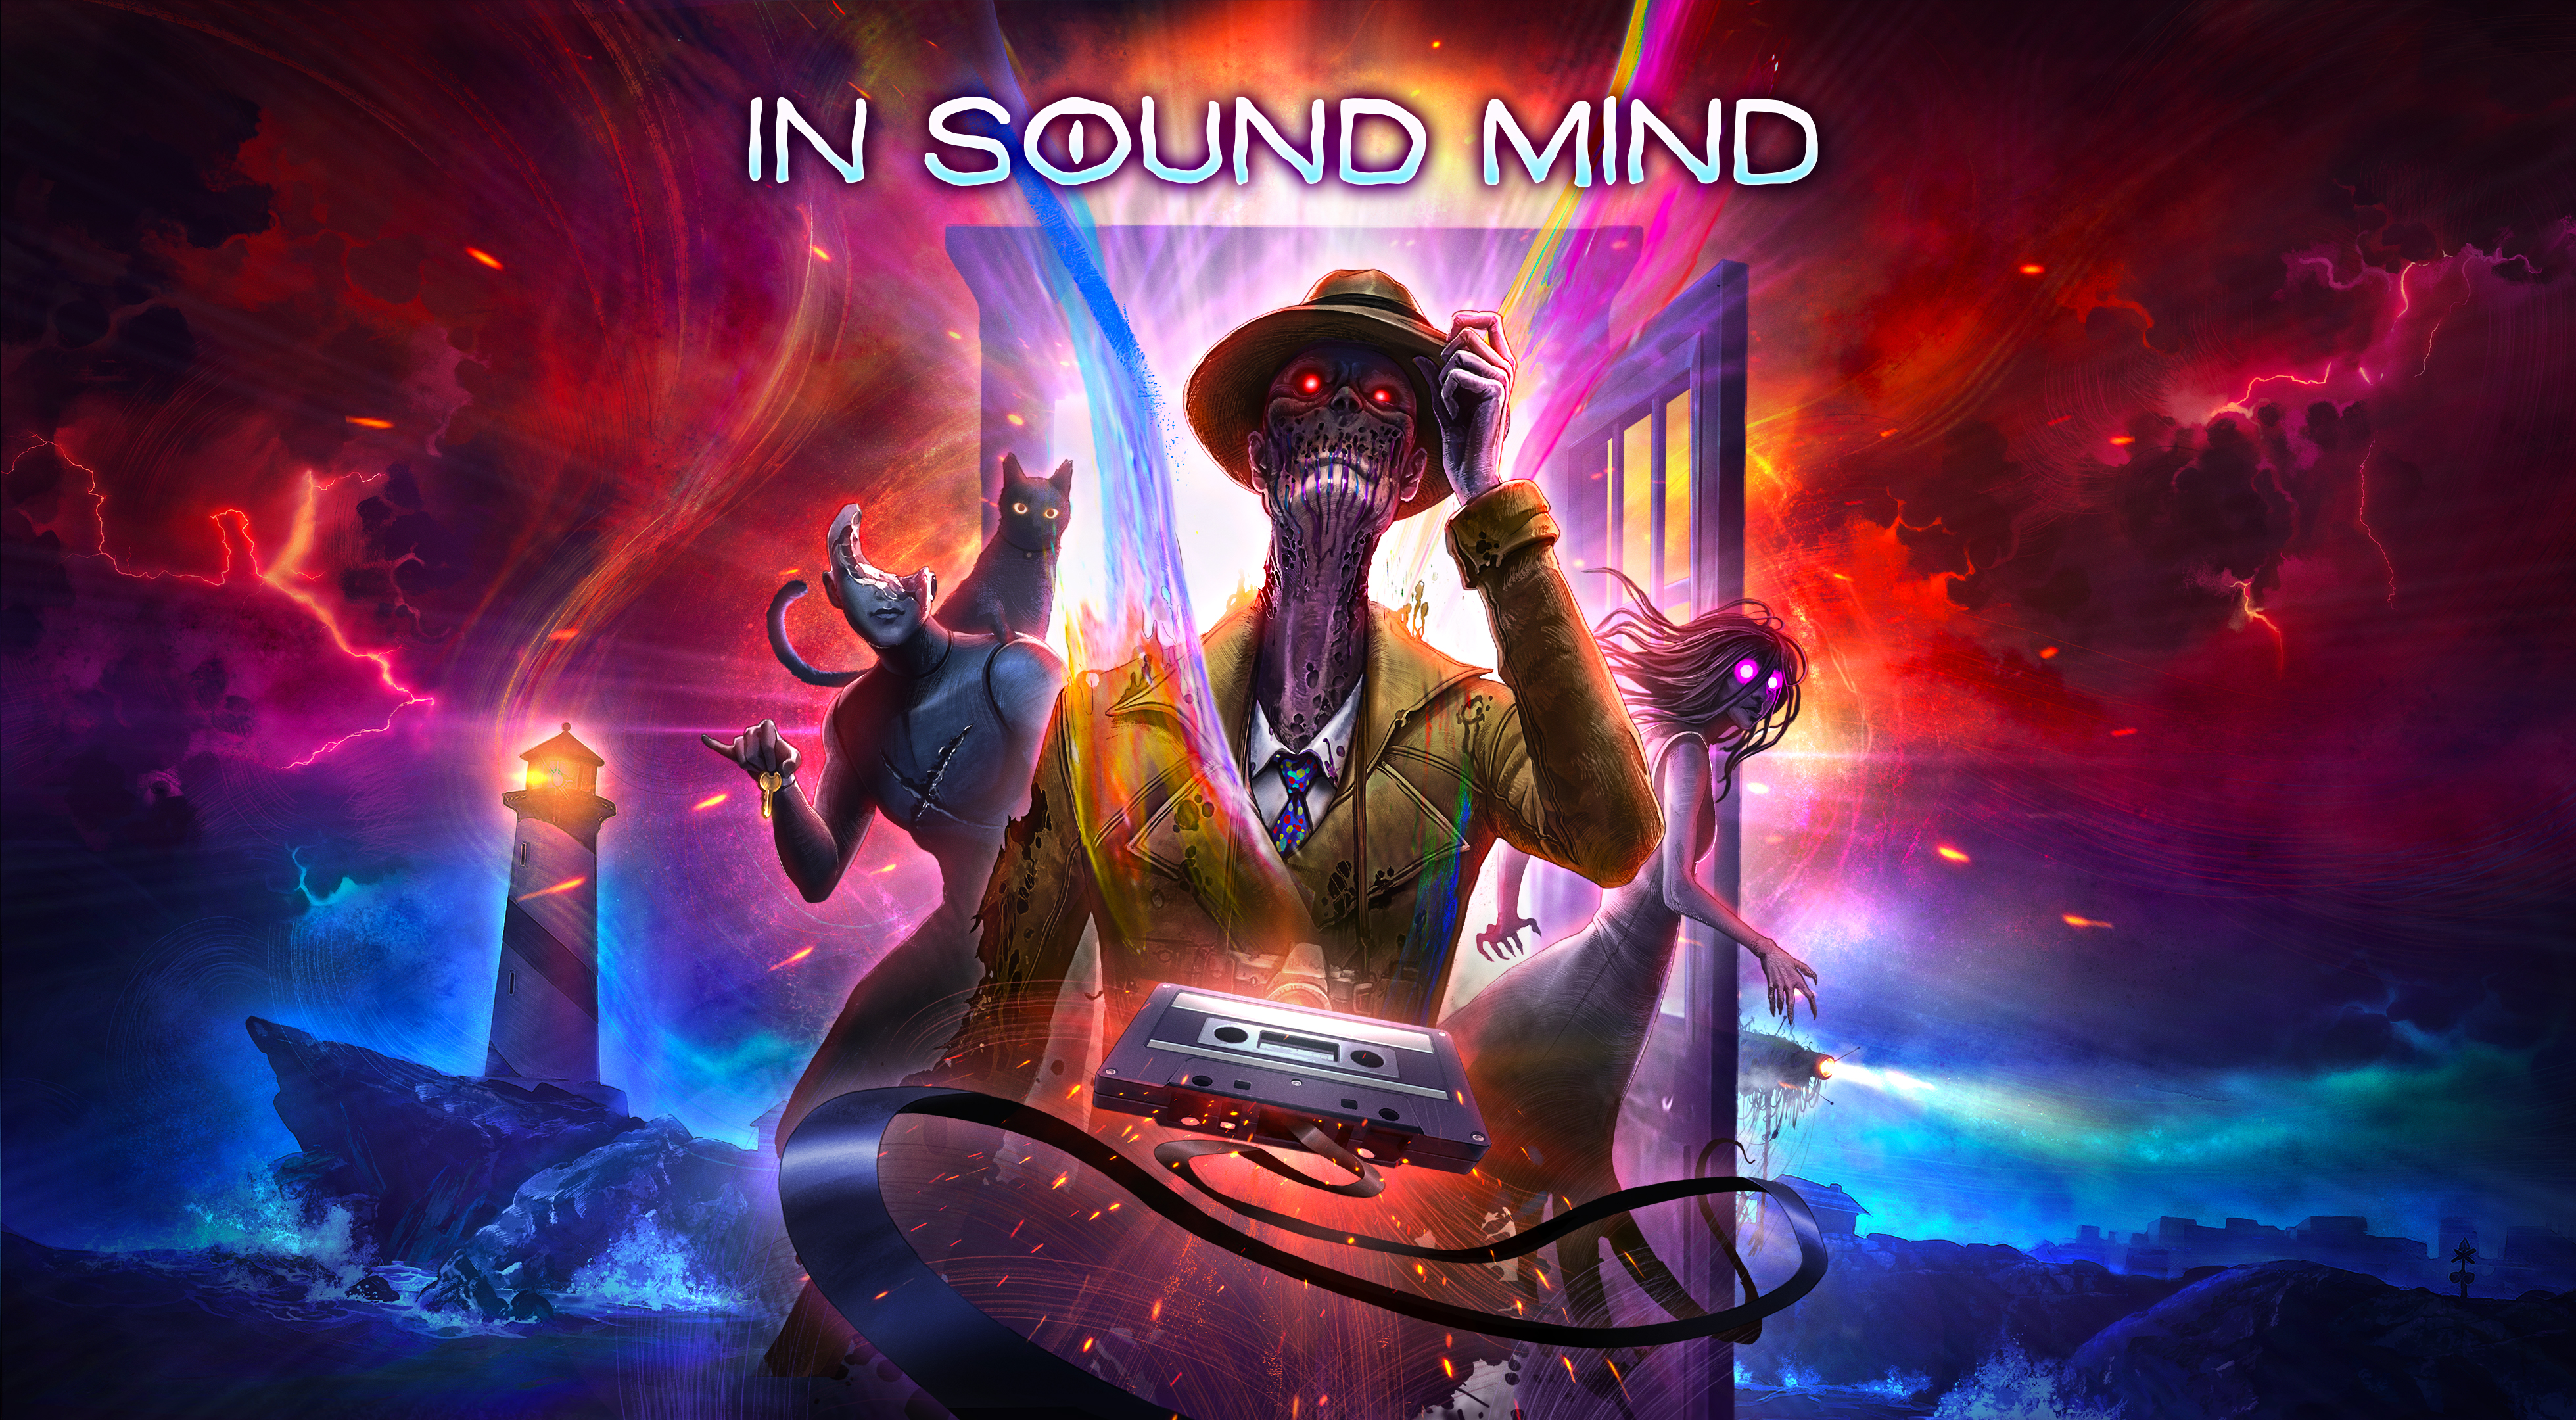 Preview in Sound Mind: Don't lose your mind